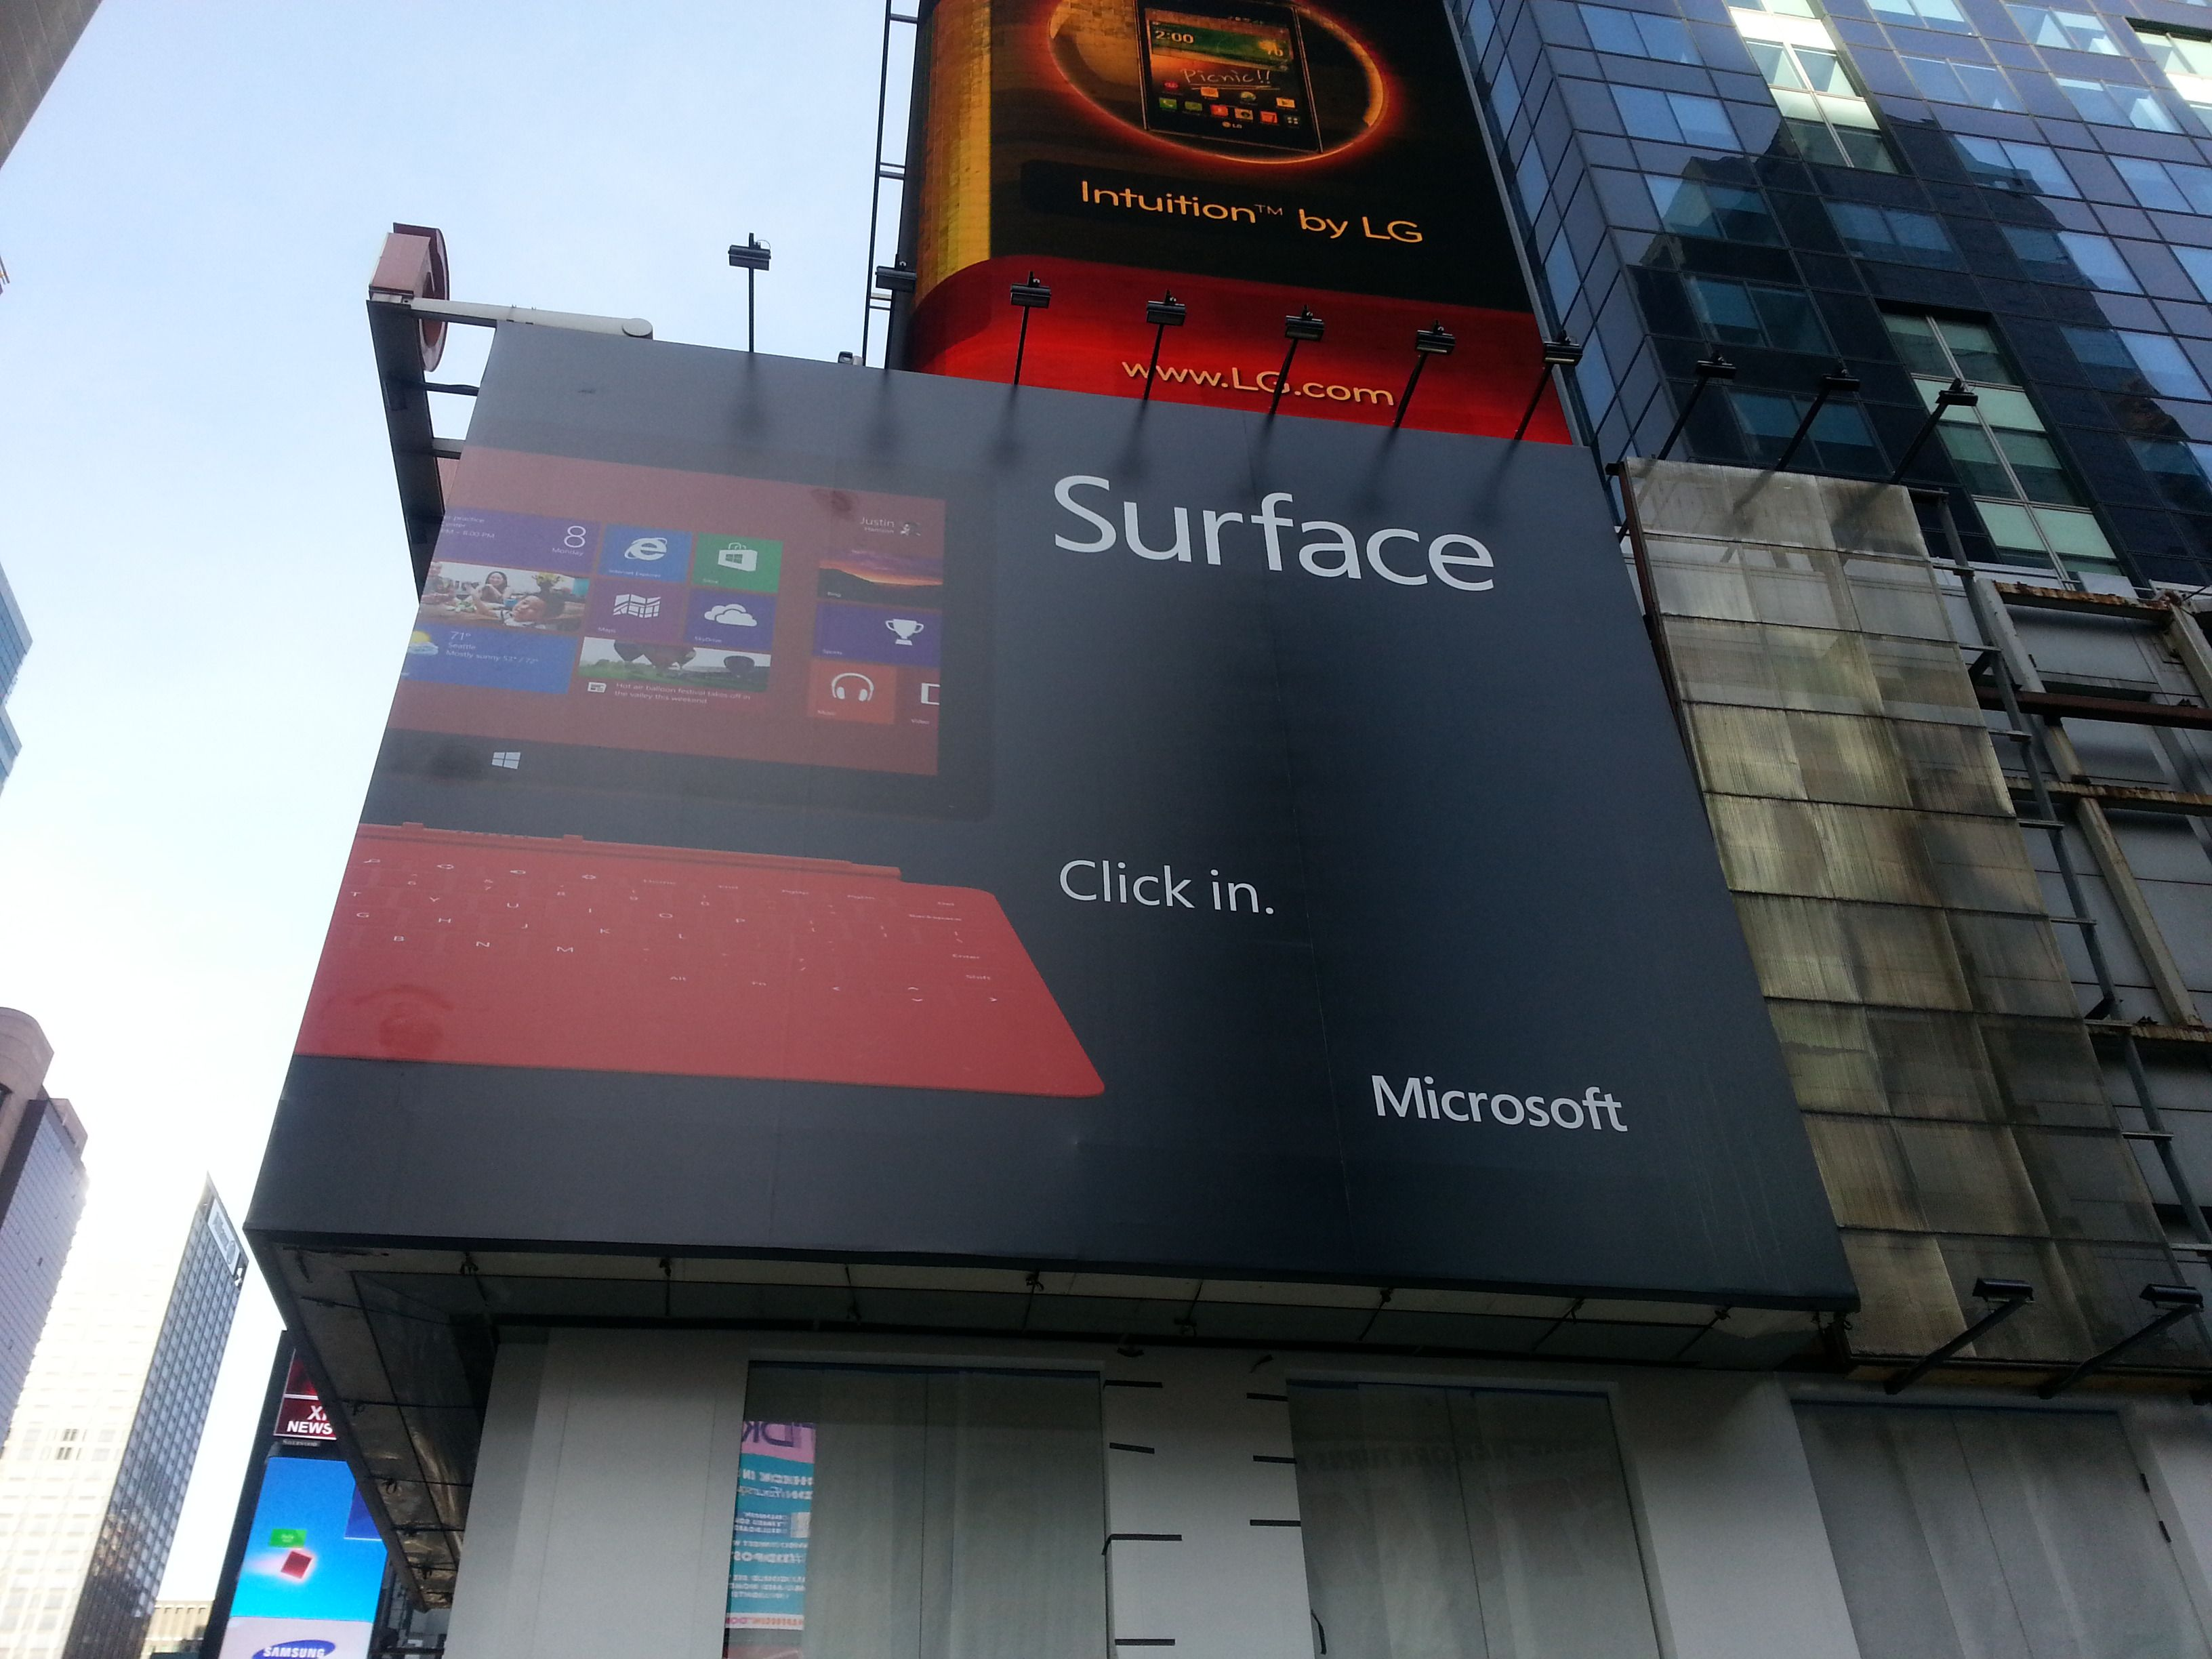 Microsoft Surface Ad Time Square, New York City 3